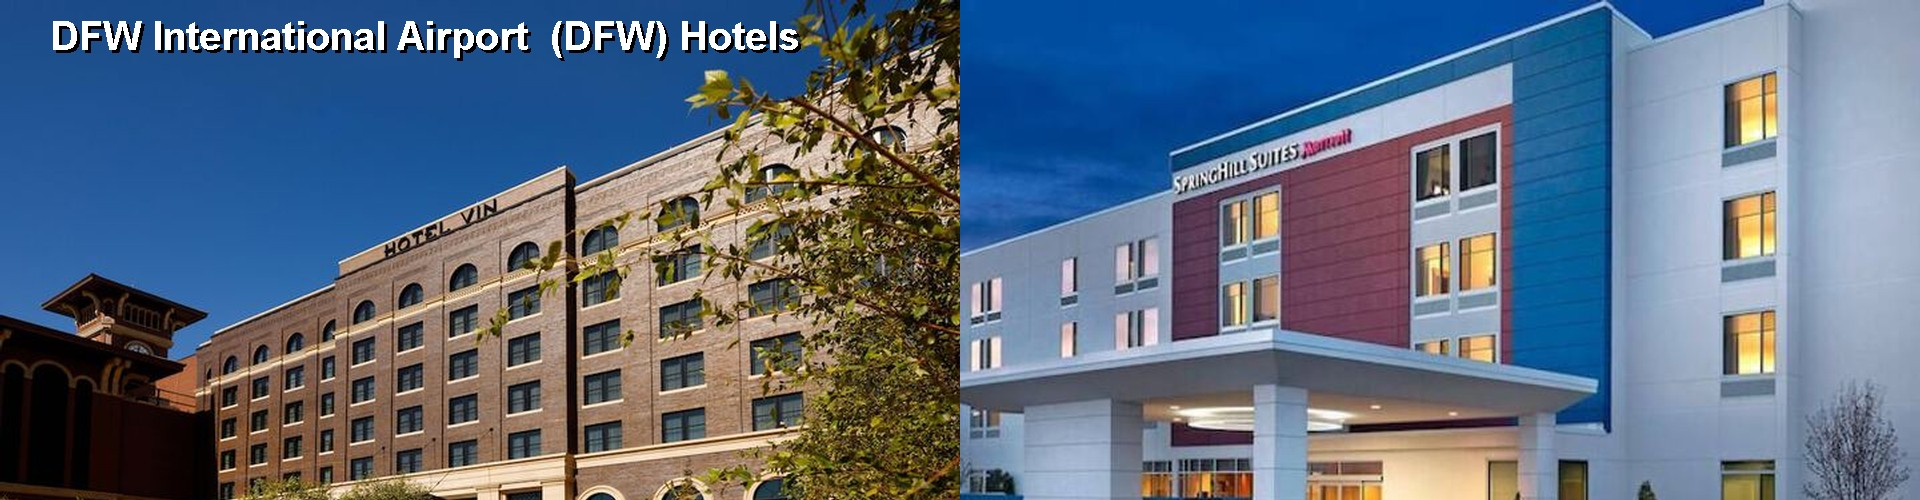 5 Best Hotels Near Dfw International Airport